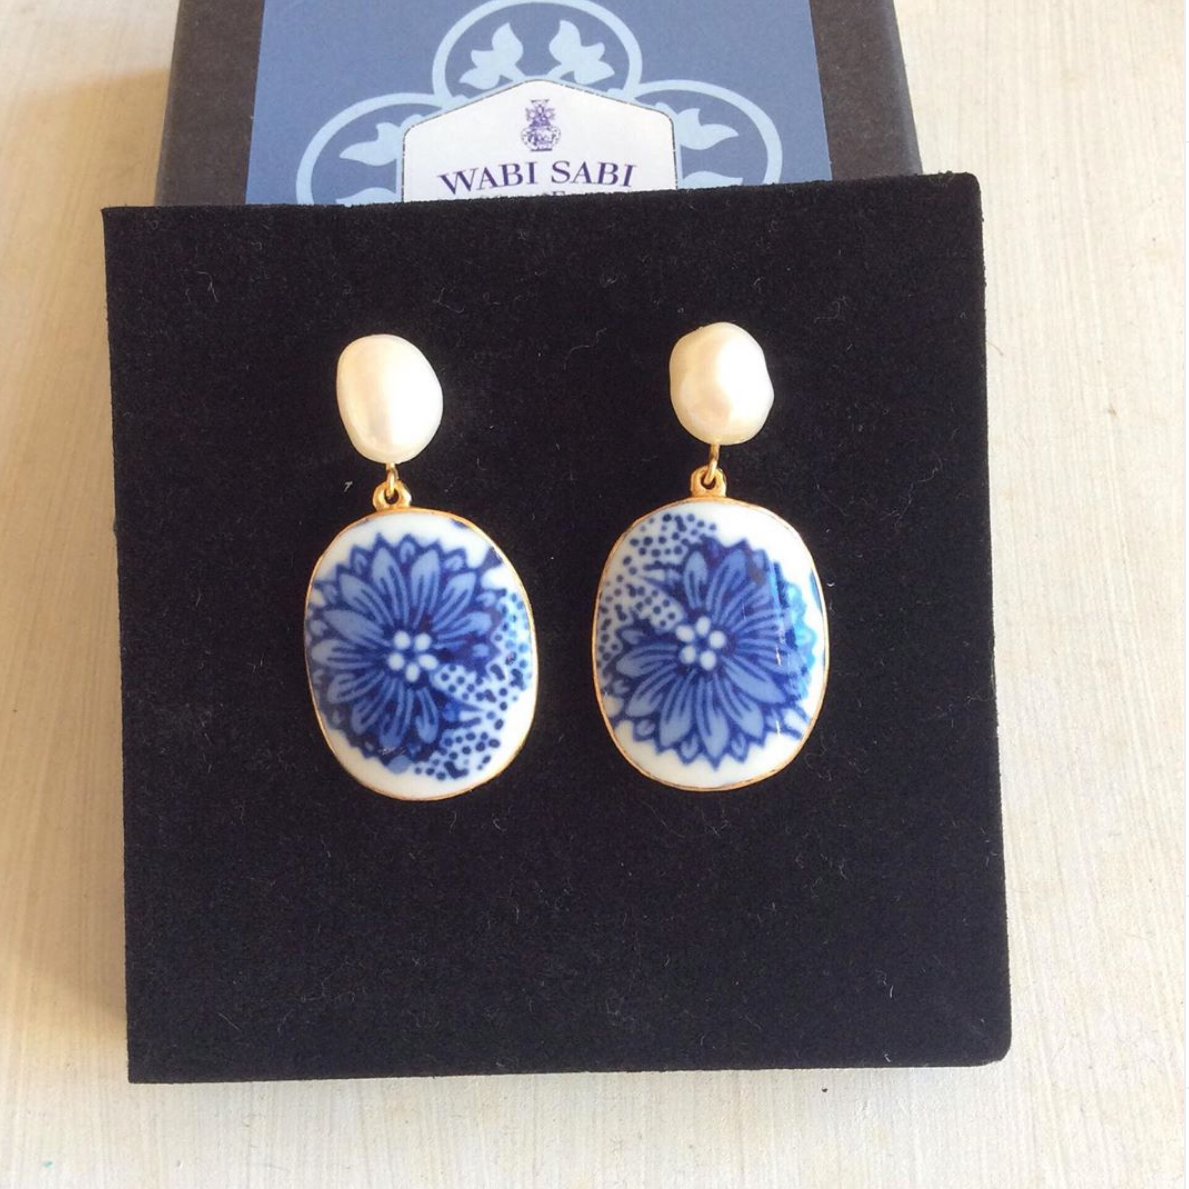 Chinoiserie Blue & White Porcelain Earrings With Freshwater Pearl Studs